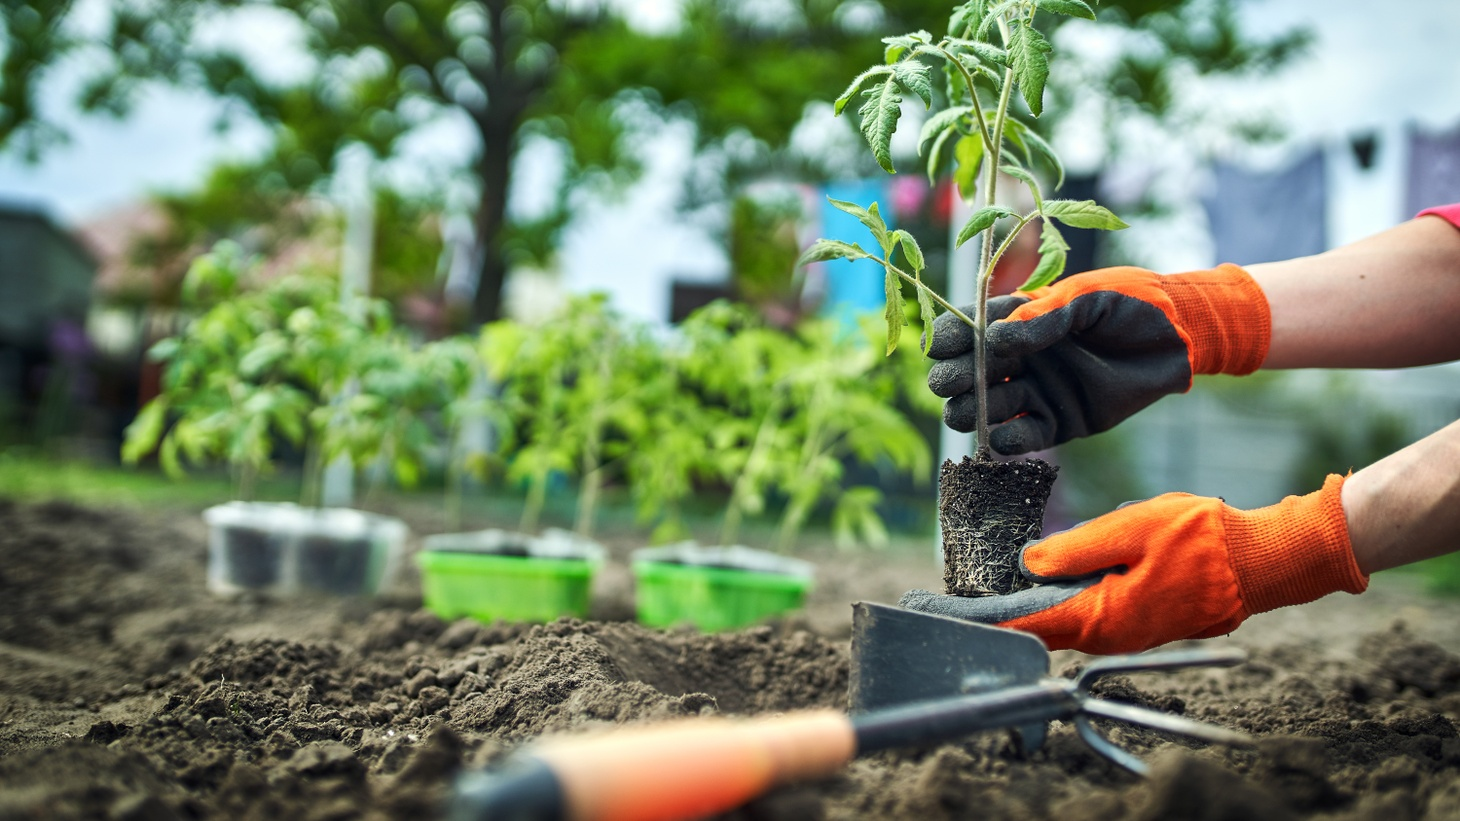 A person plants tomato seedlings in an organic garden.